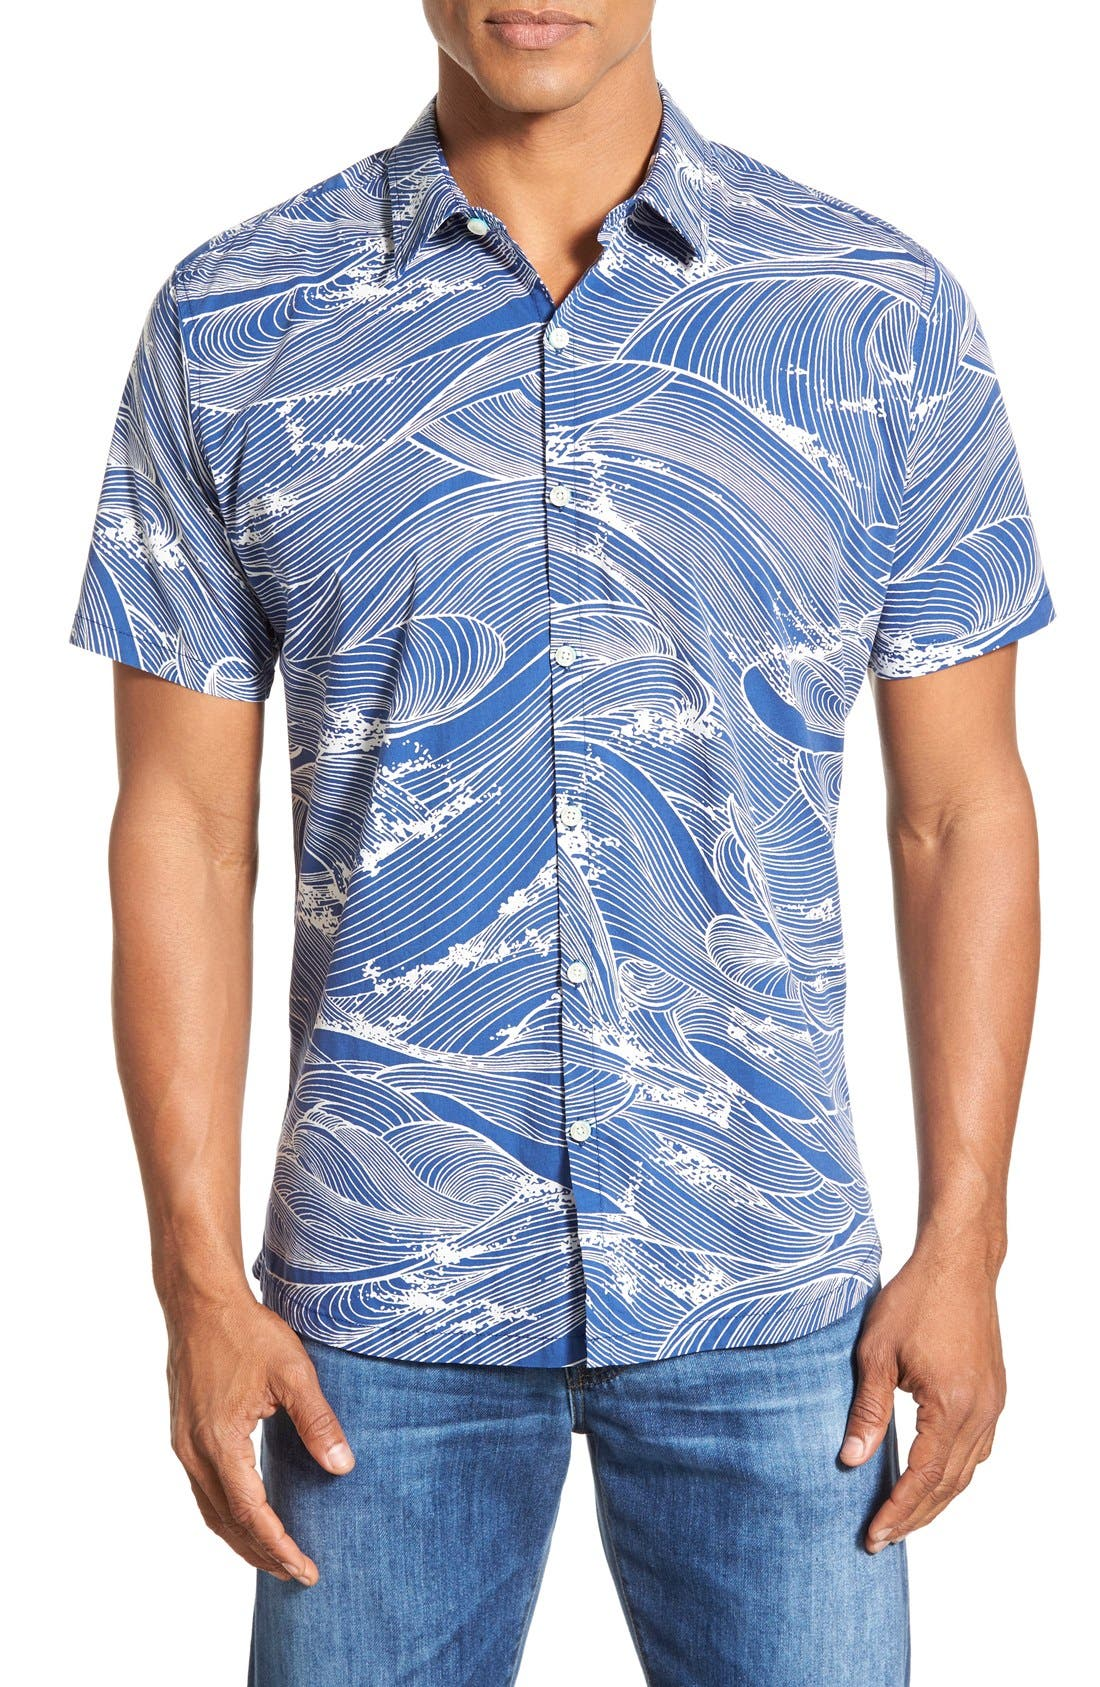 Tori Richard 'Ocean's 11' Classic Fit Cotton Lawn Sport Shirt